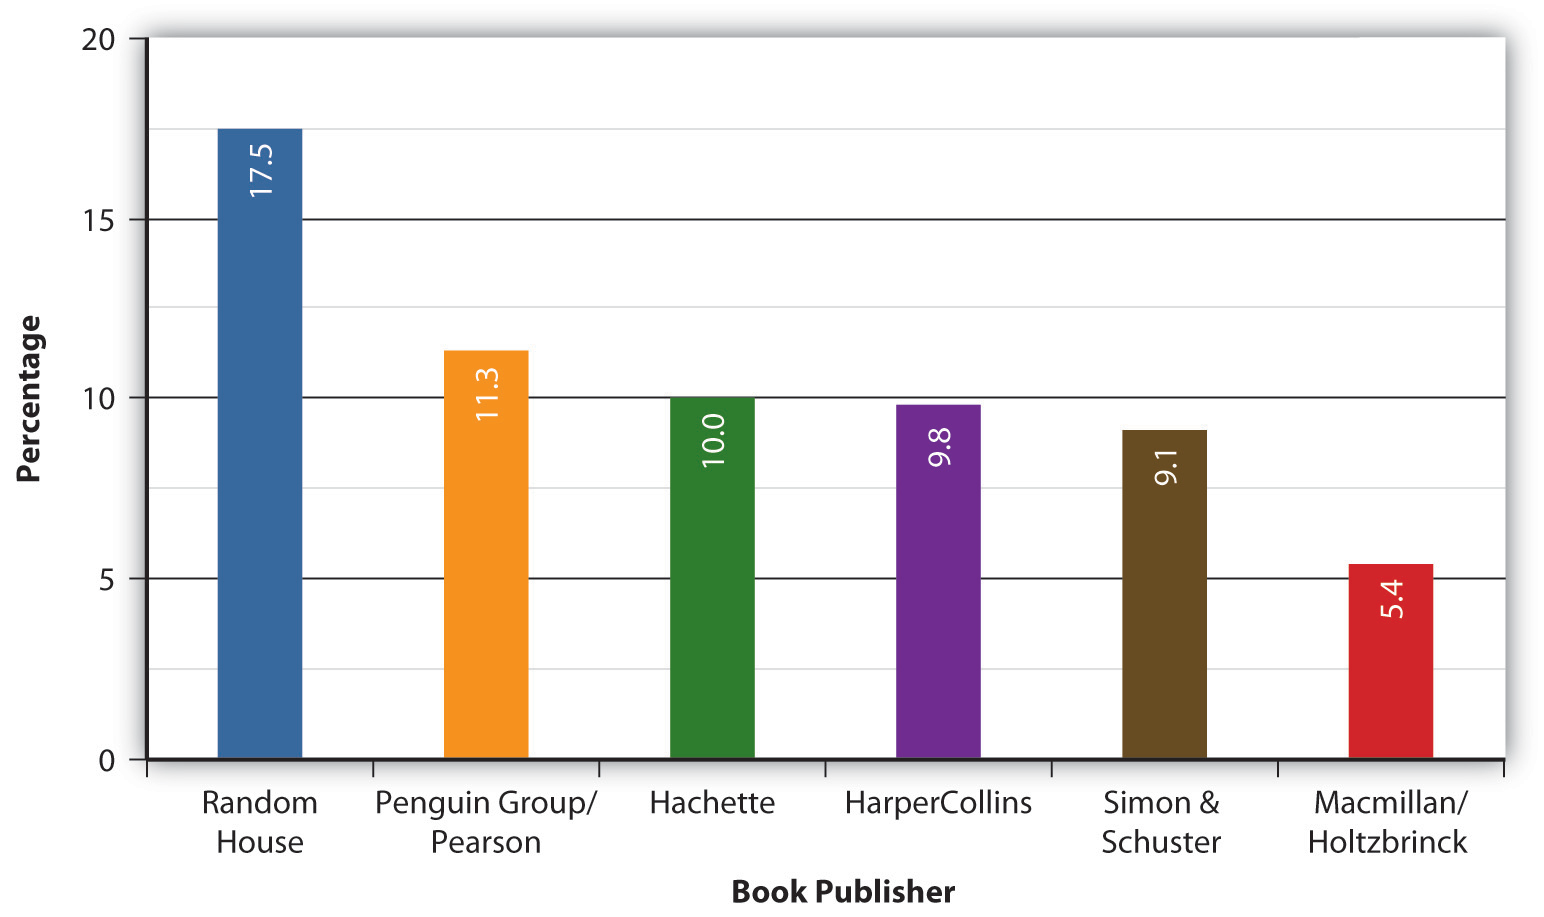 Books brief history development trends and current technology michael hyatt top ten us book publishers for 2009 january 15 2010 in the first years of the third millennium book publishing was an increasingly fandeluxe Choice Image